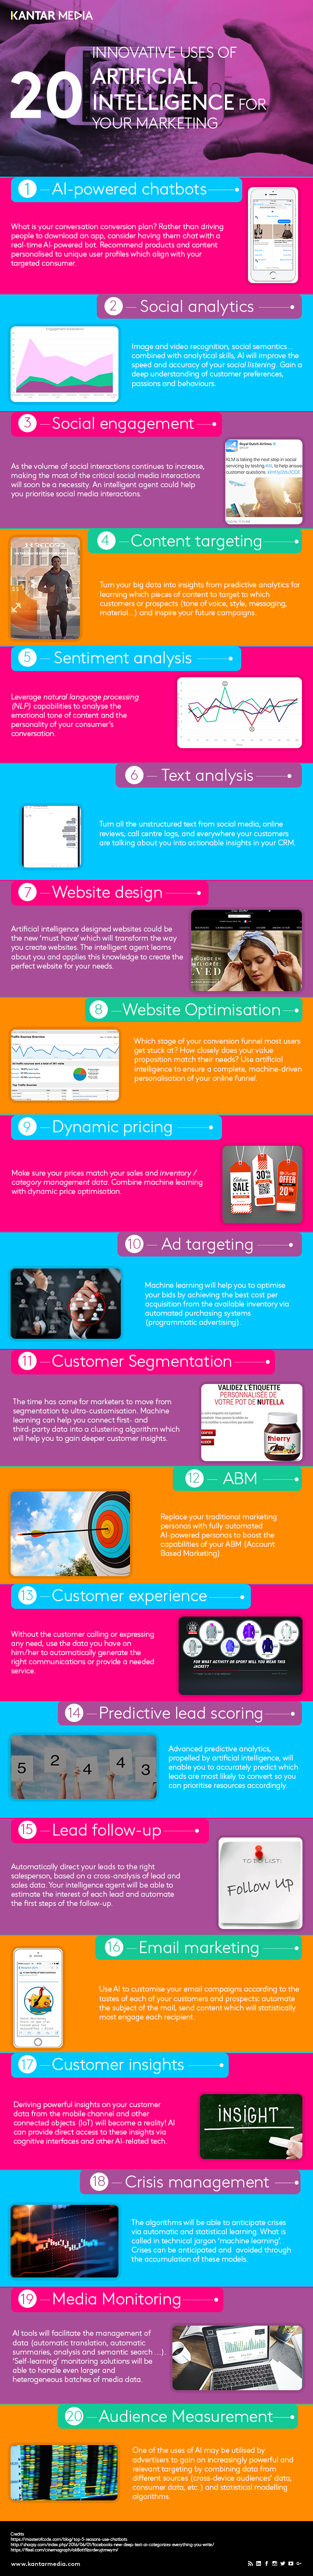 Infographic AI Marketing